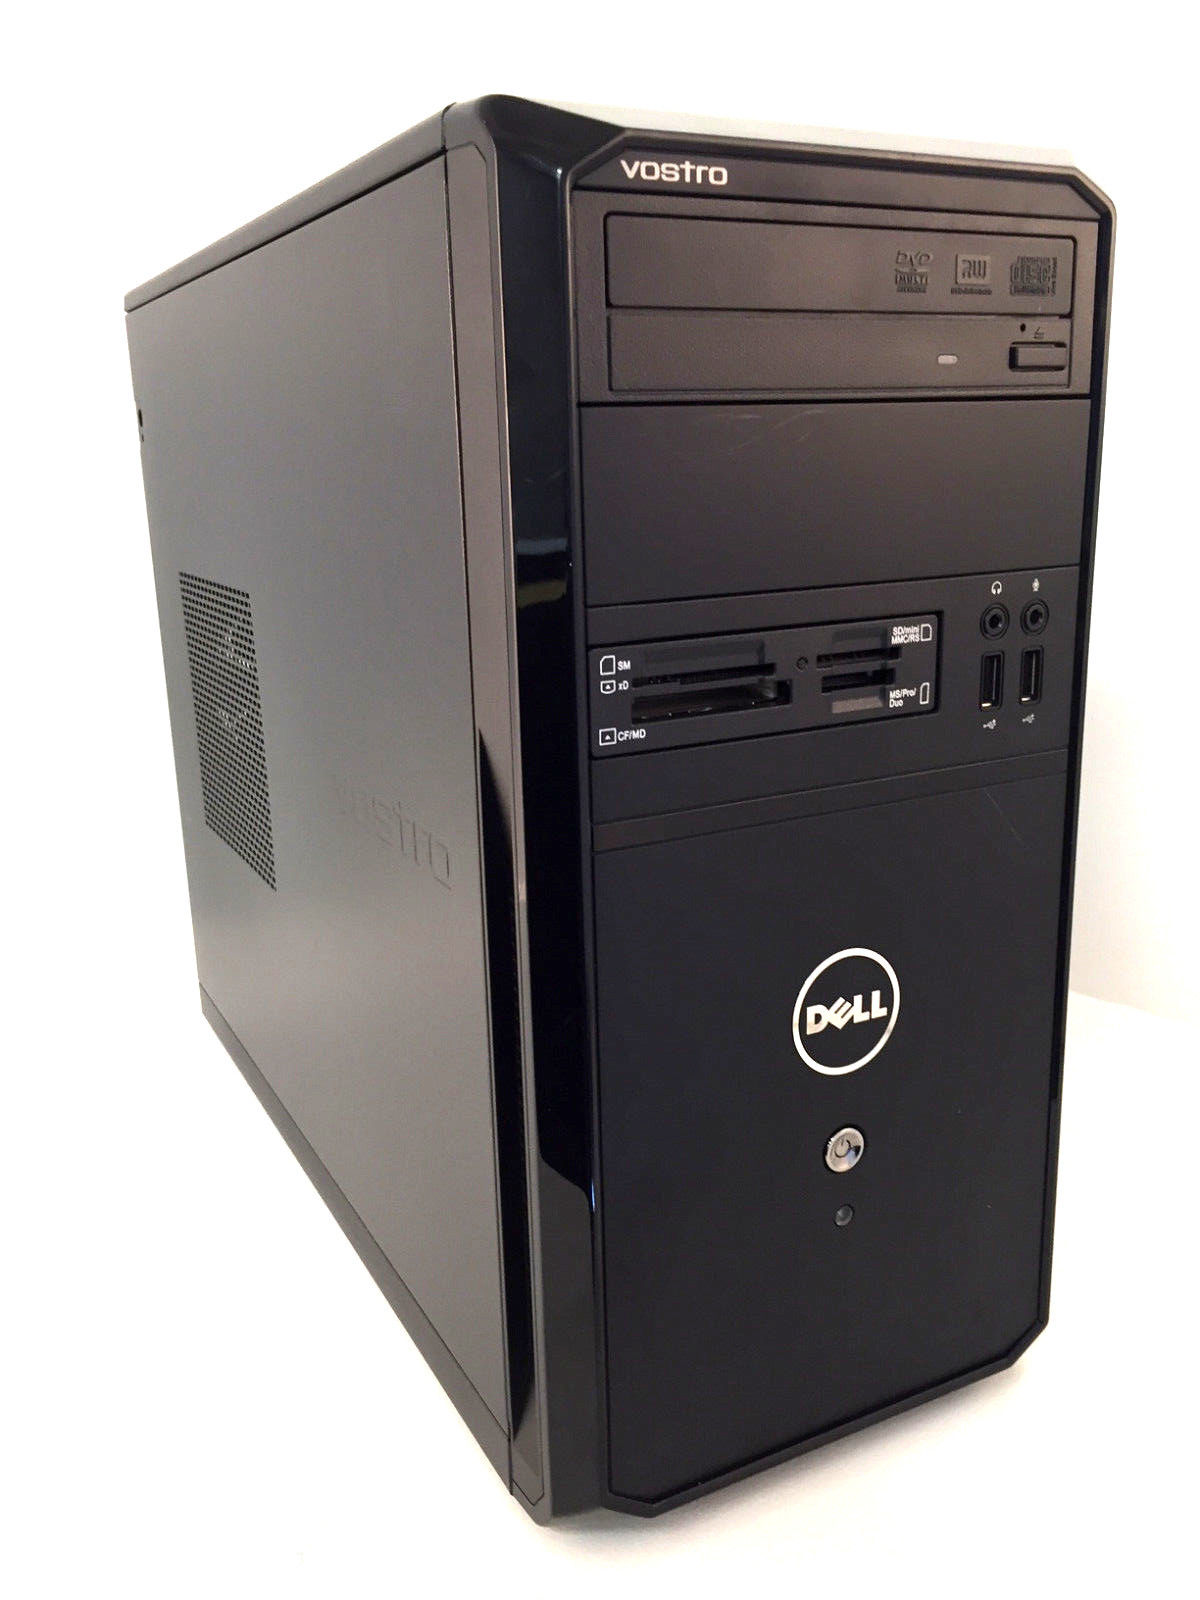 Dell Vostrol 260 No 1